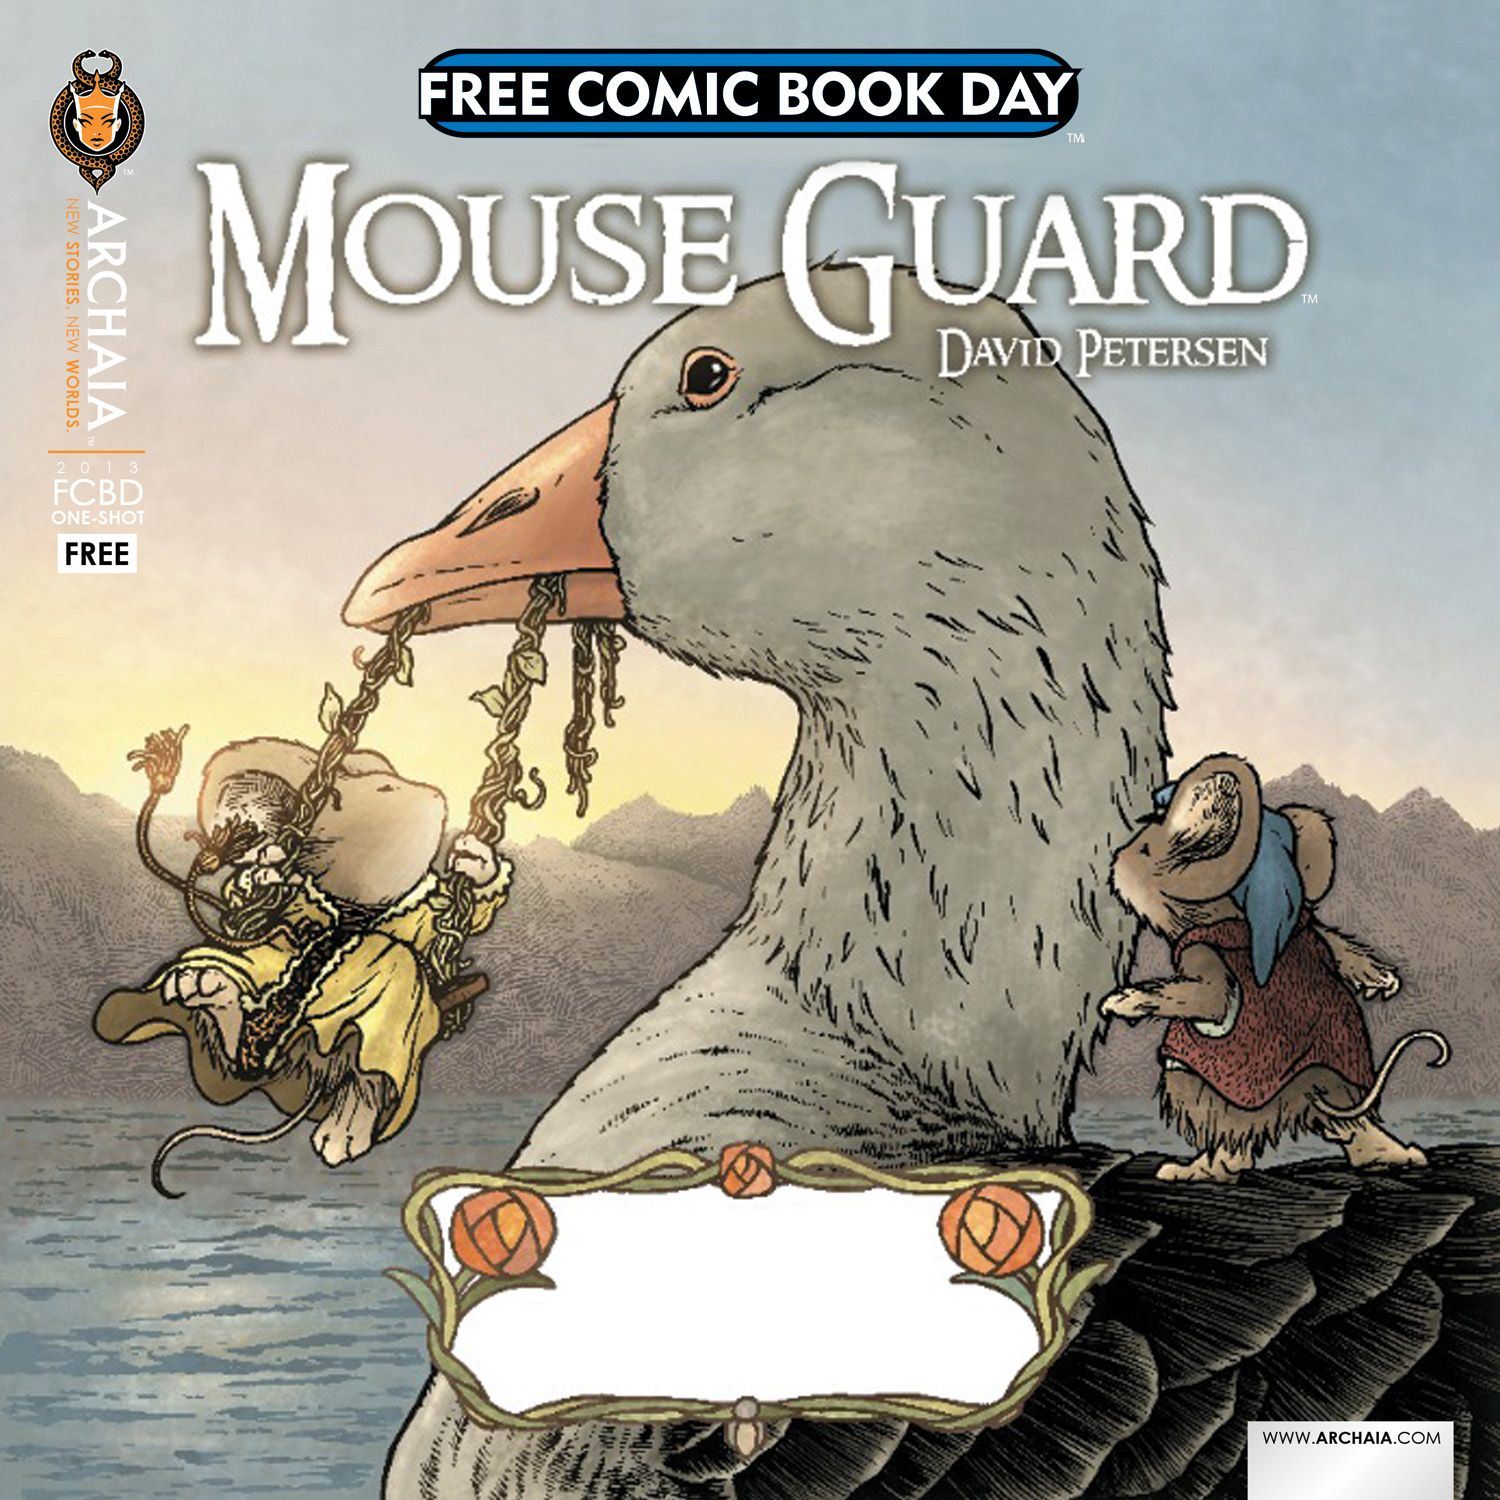 Image result for mouse guard boat